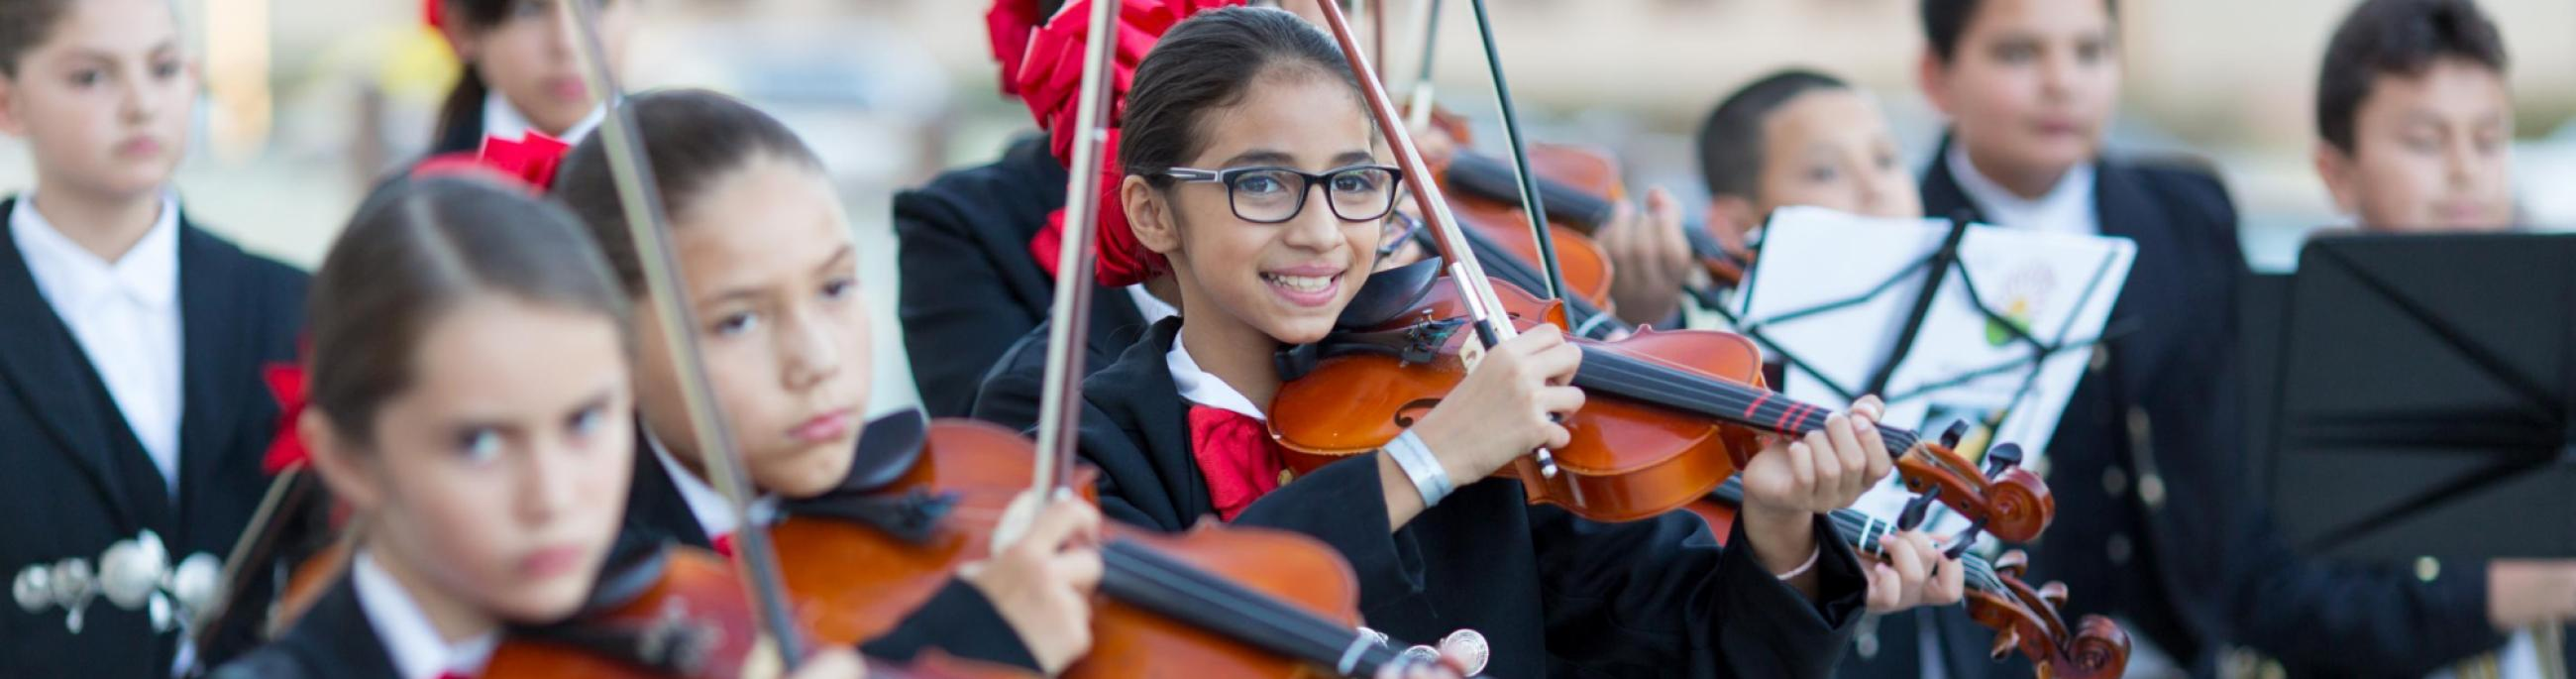 Kids enjoying Mariachi Festival through Chandler Youth Programs